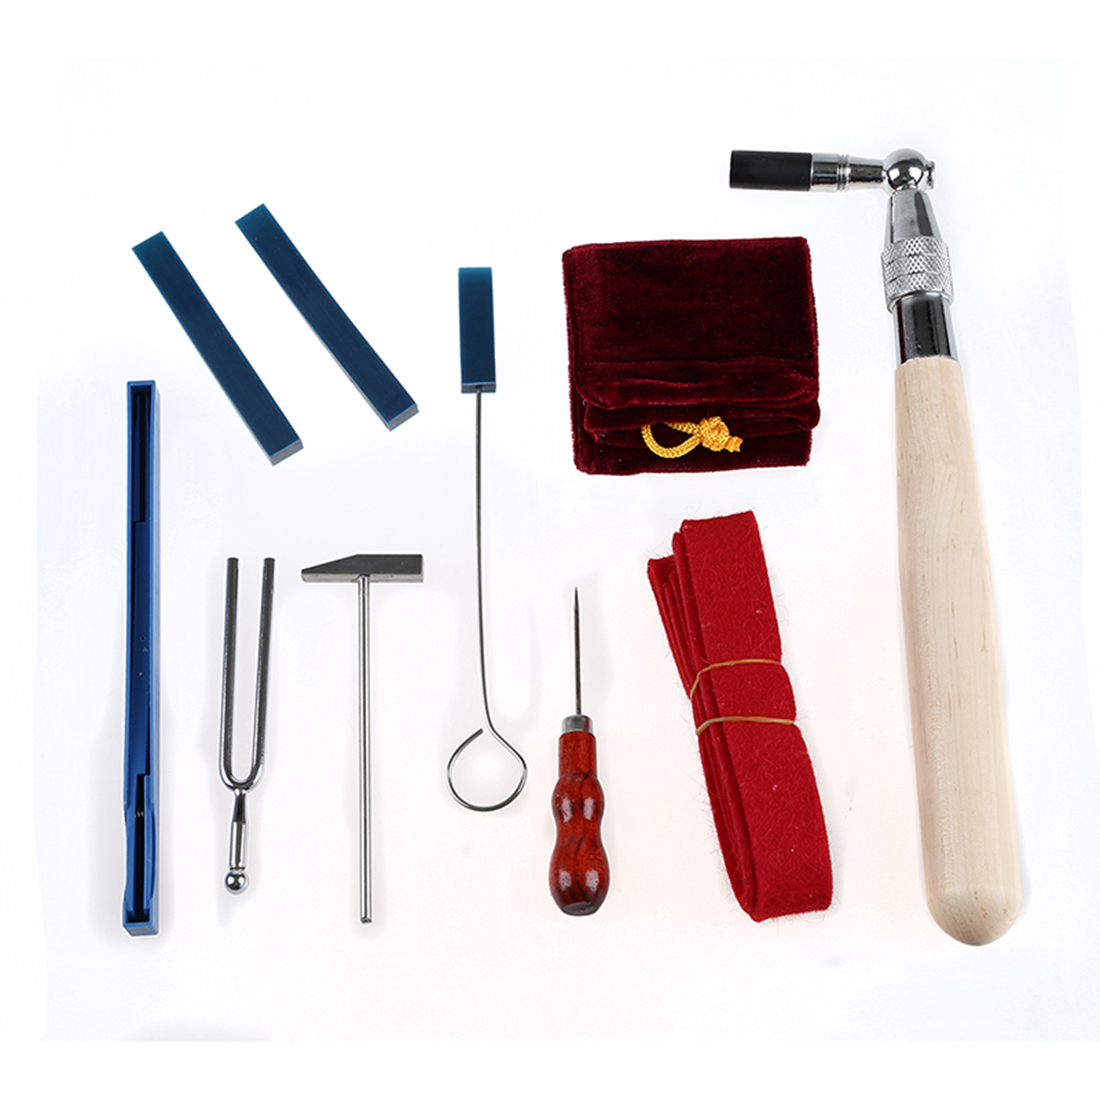 2Pcs 11Pcs Professional Piano Tuning Tool Kit Maintenance Equip with Case